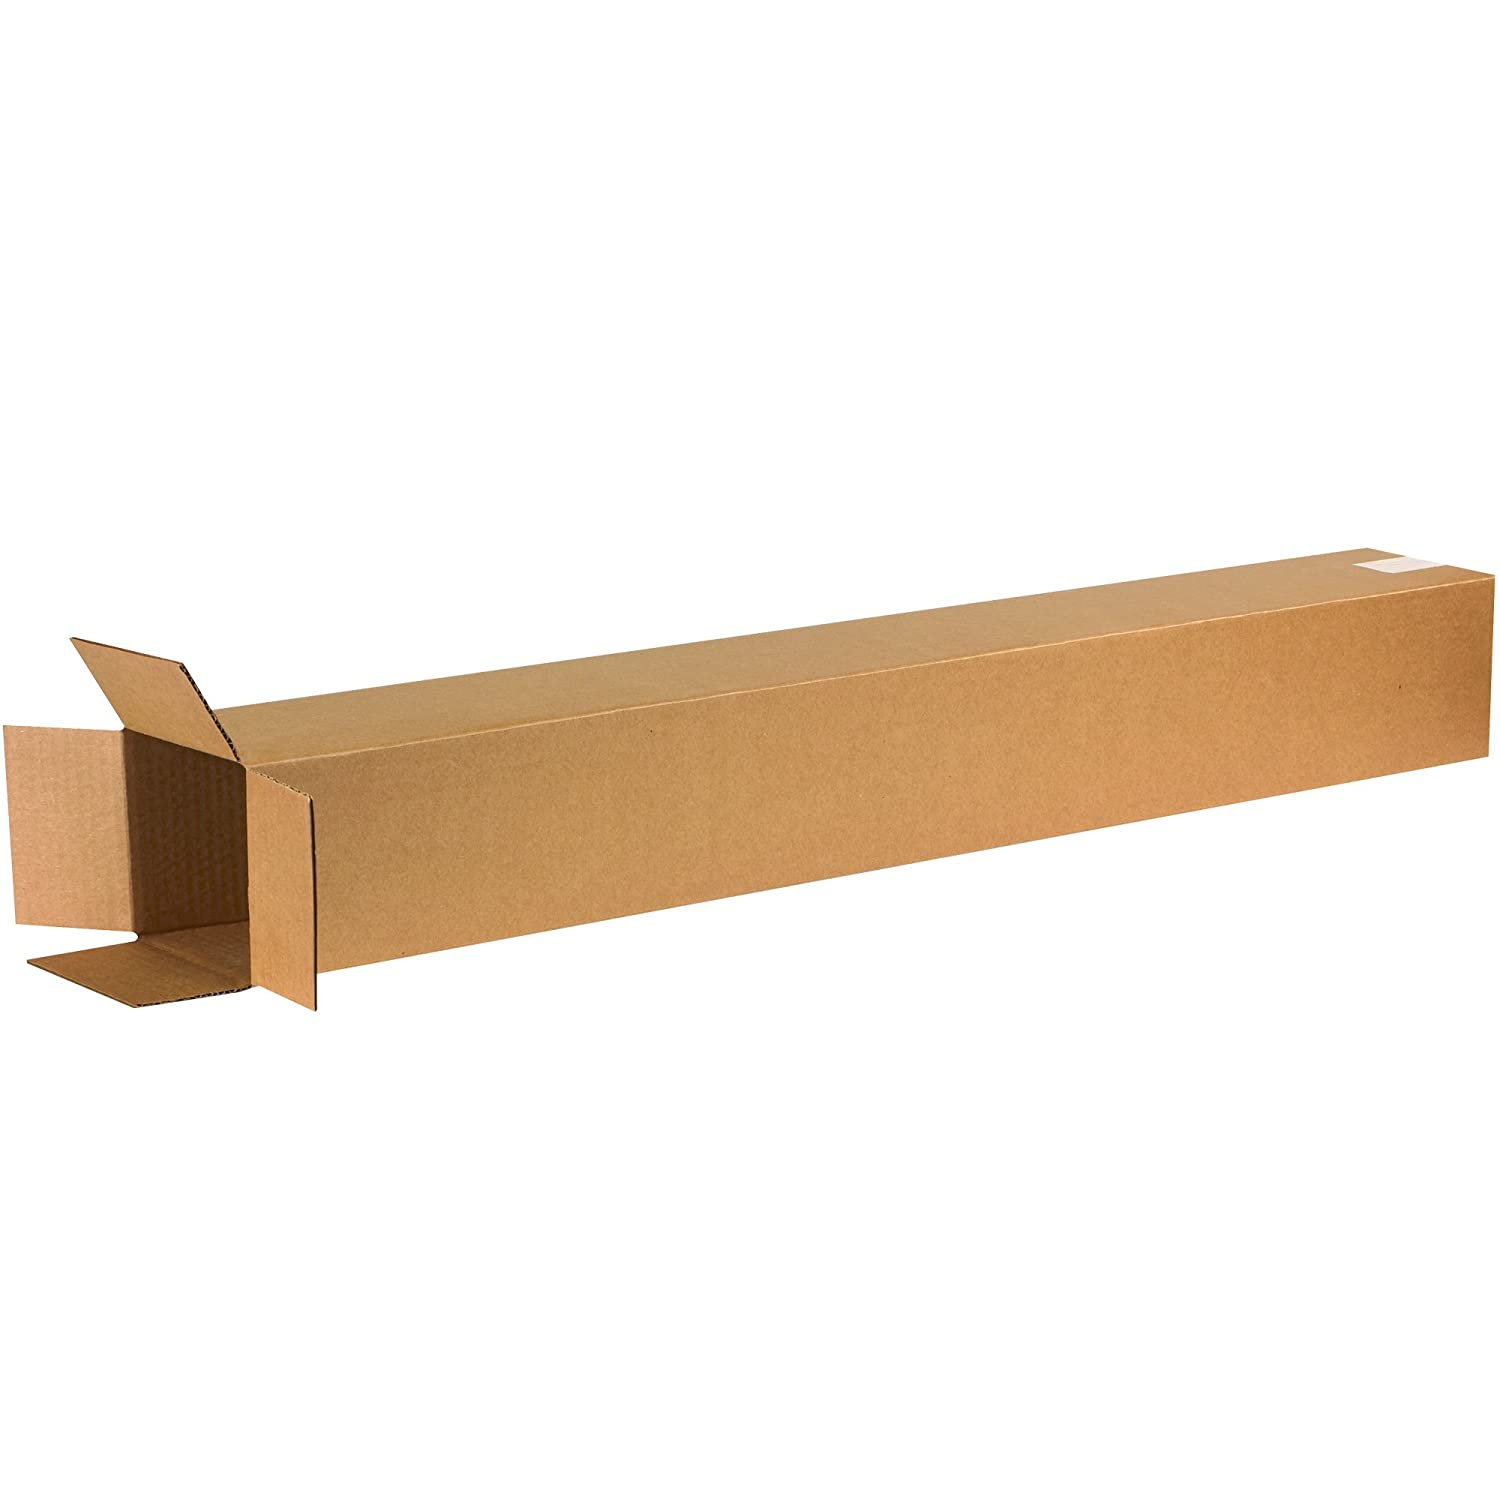 Pack of 25 Ship Now Supply SN6648 Tall Corrugated Boxes 6L x 6W x 48H Kraft